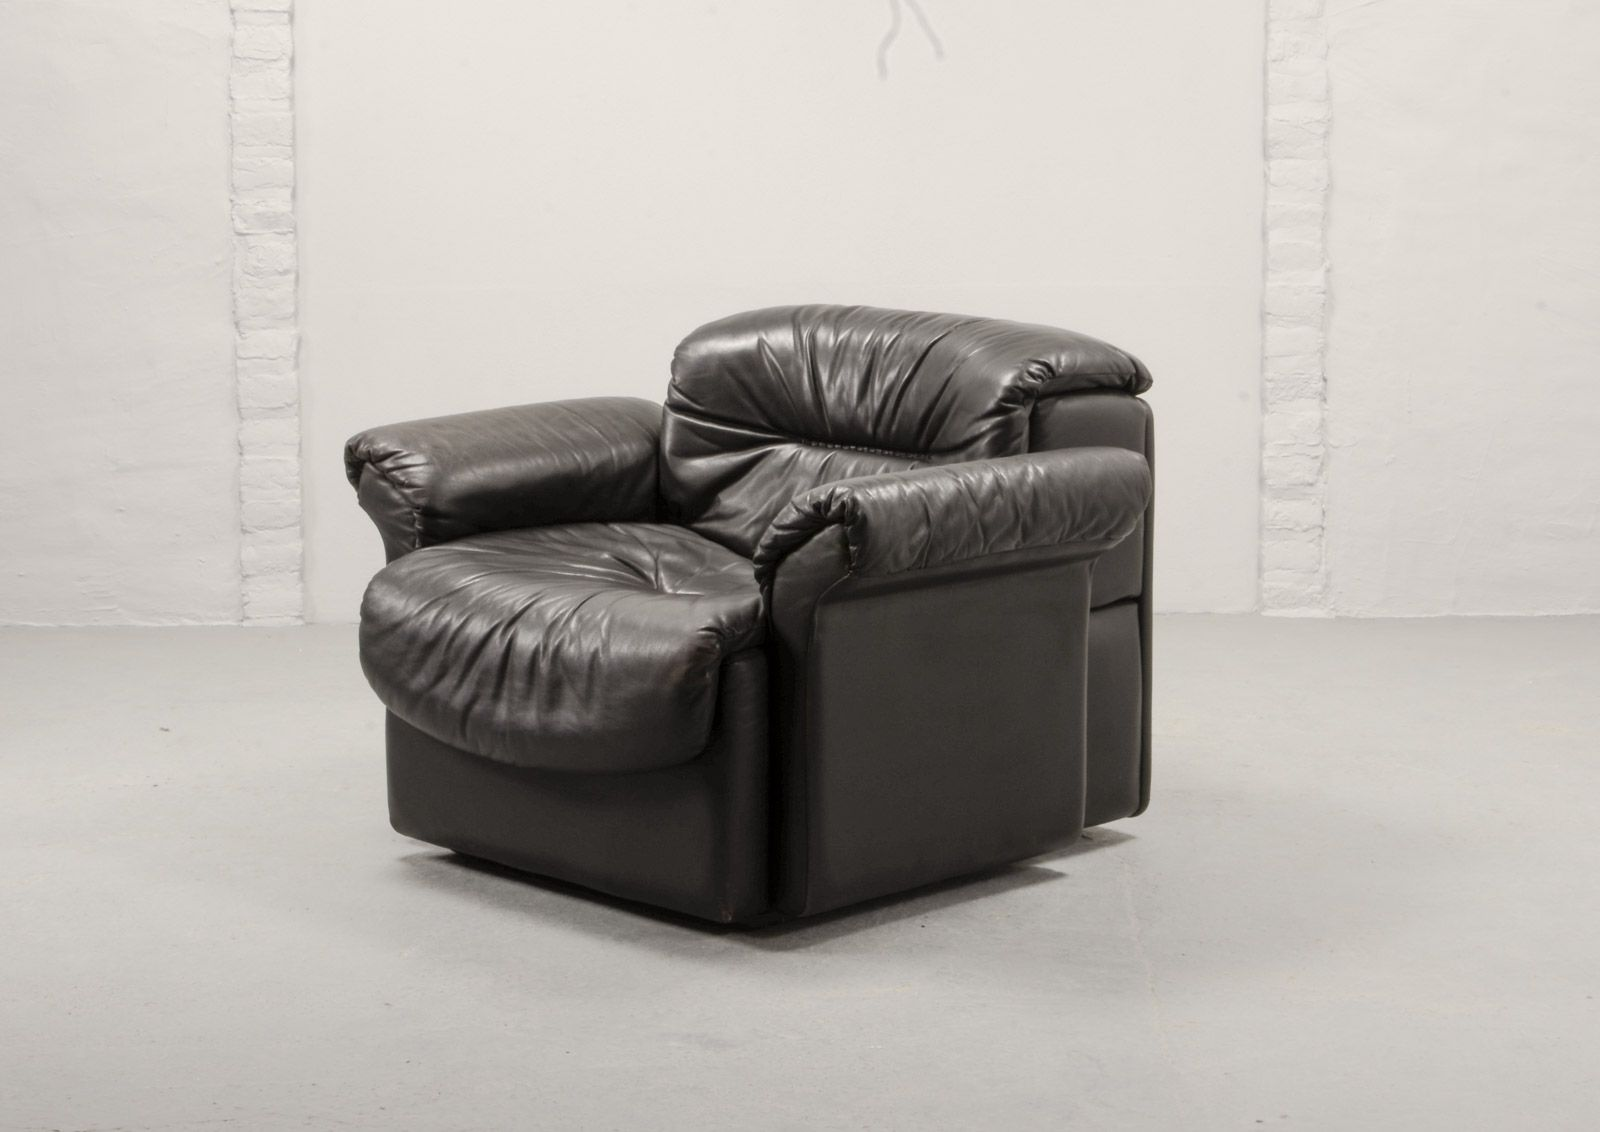 Sensational Black Leather Ds17 1 Lounge Chair From De Sede 1970S Pdpeps Interior Chair Design Pdpepsorg